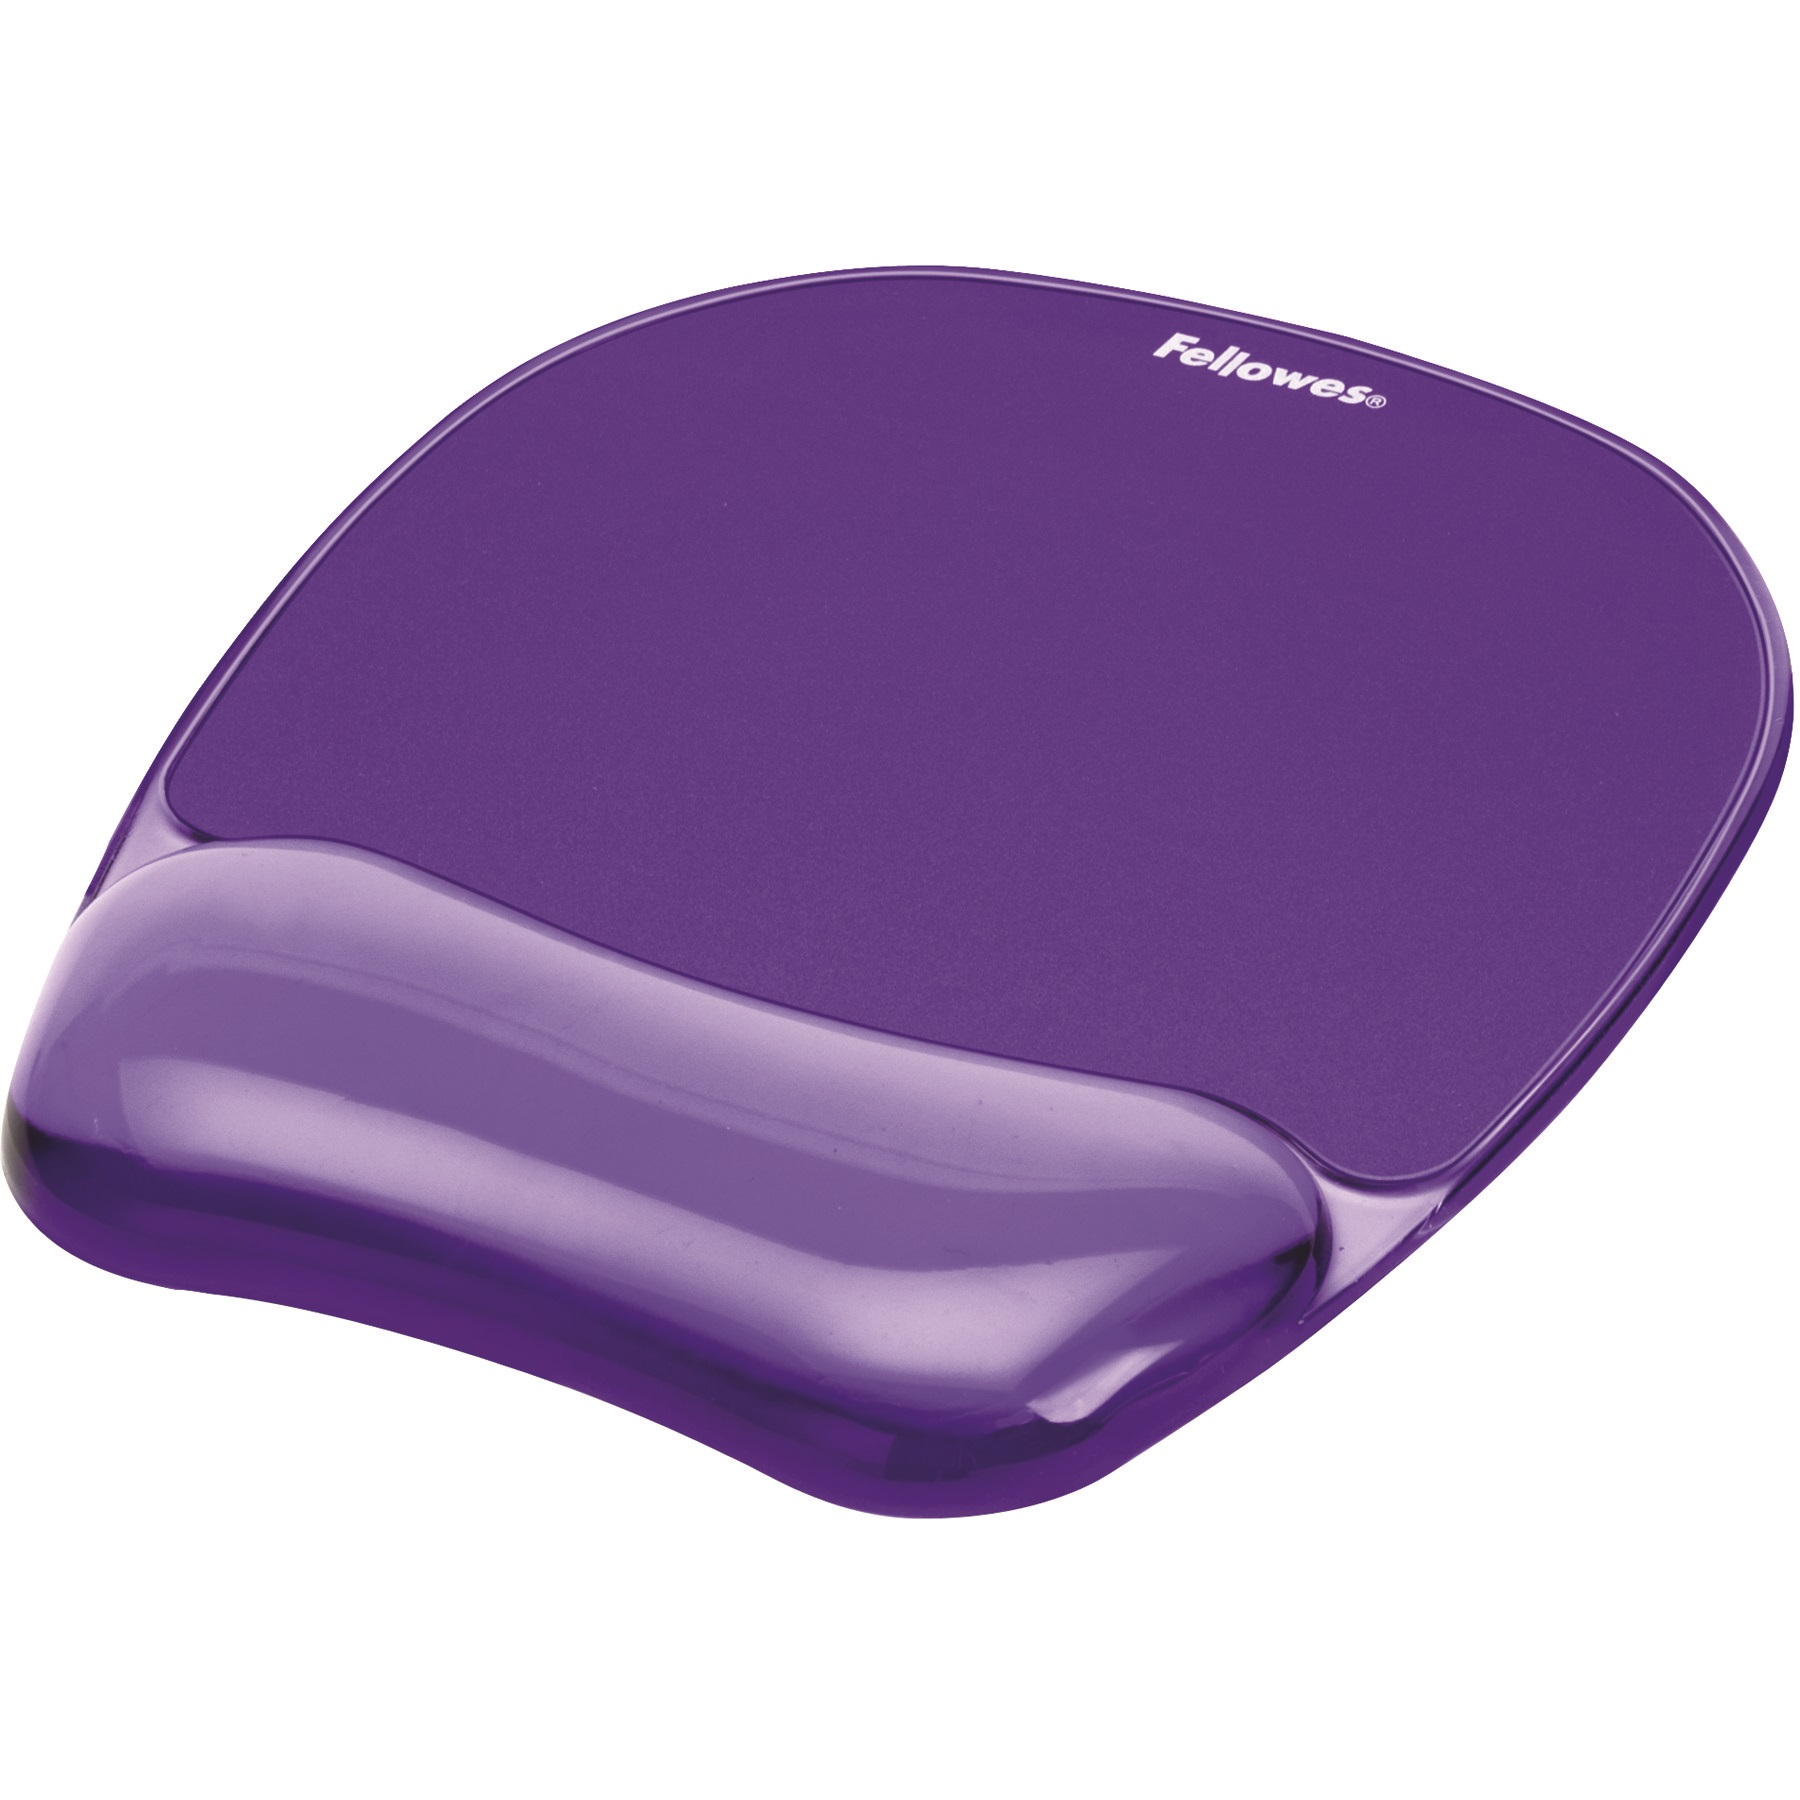 Crystal Purple Mousepad & Wrist Rest 9144104 - WC01